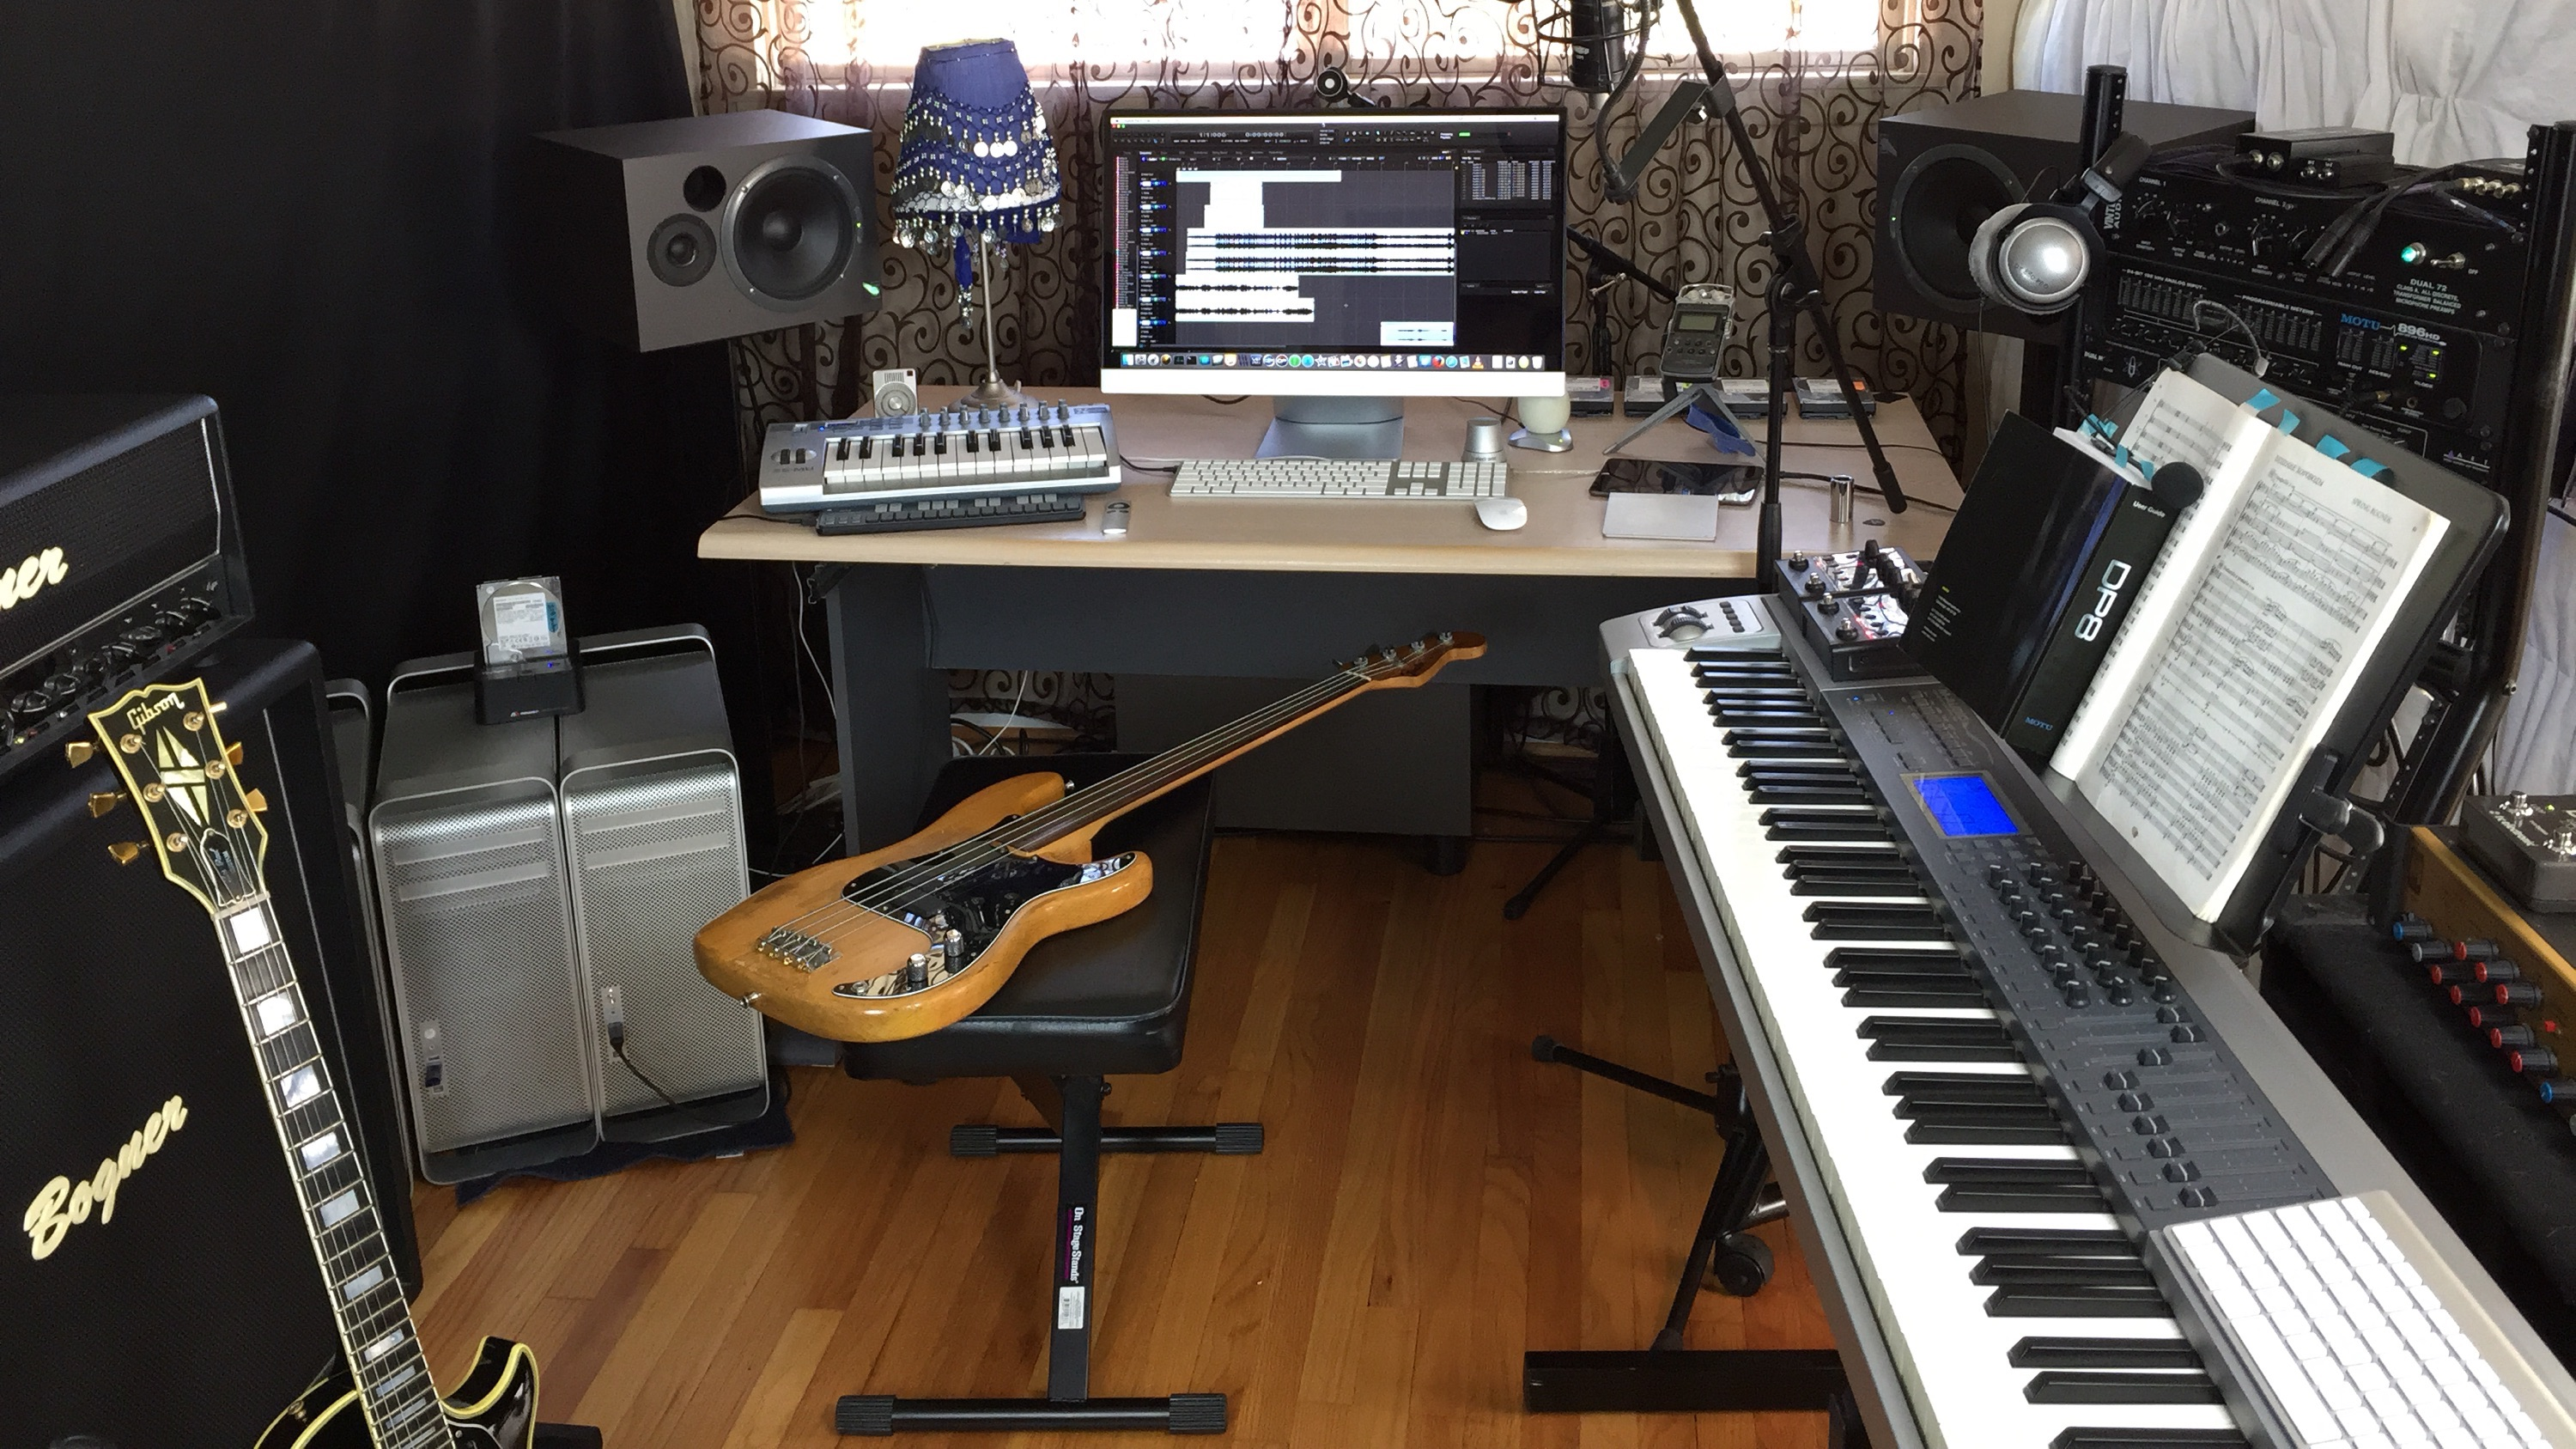 Wondrous How To Set Up The Ultimate Audio Home Recording Studio Omari Mc Largest Home Design Picture Inspirations Pitcheantrous